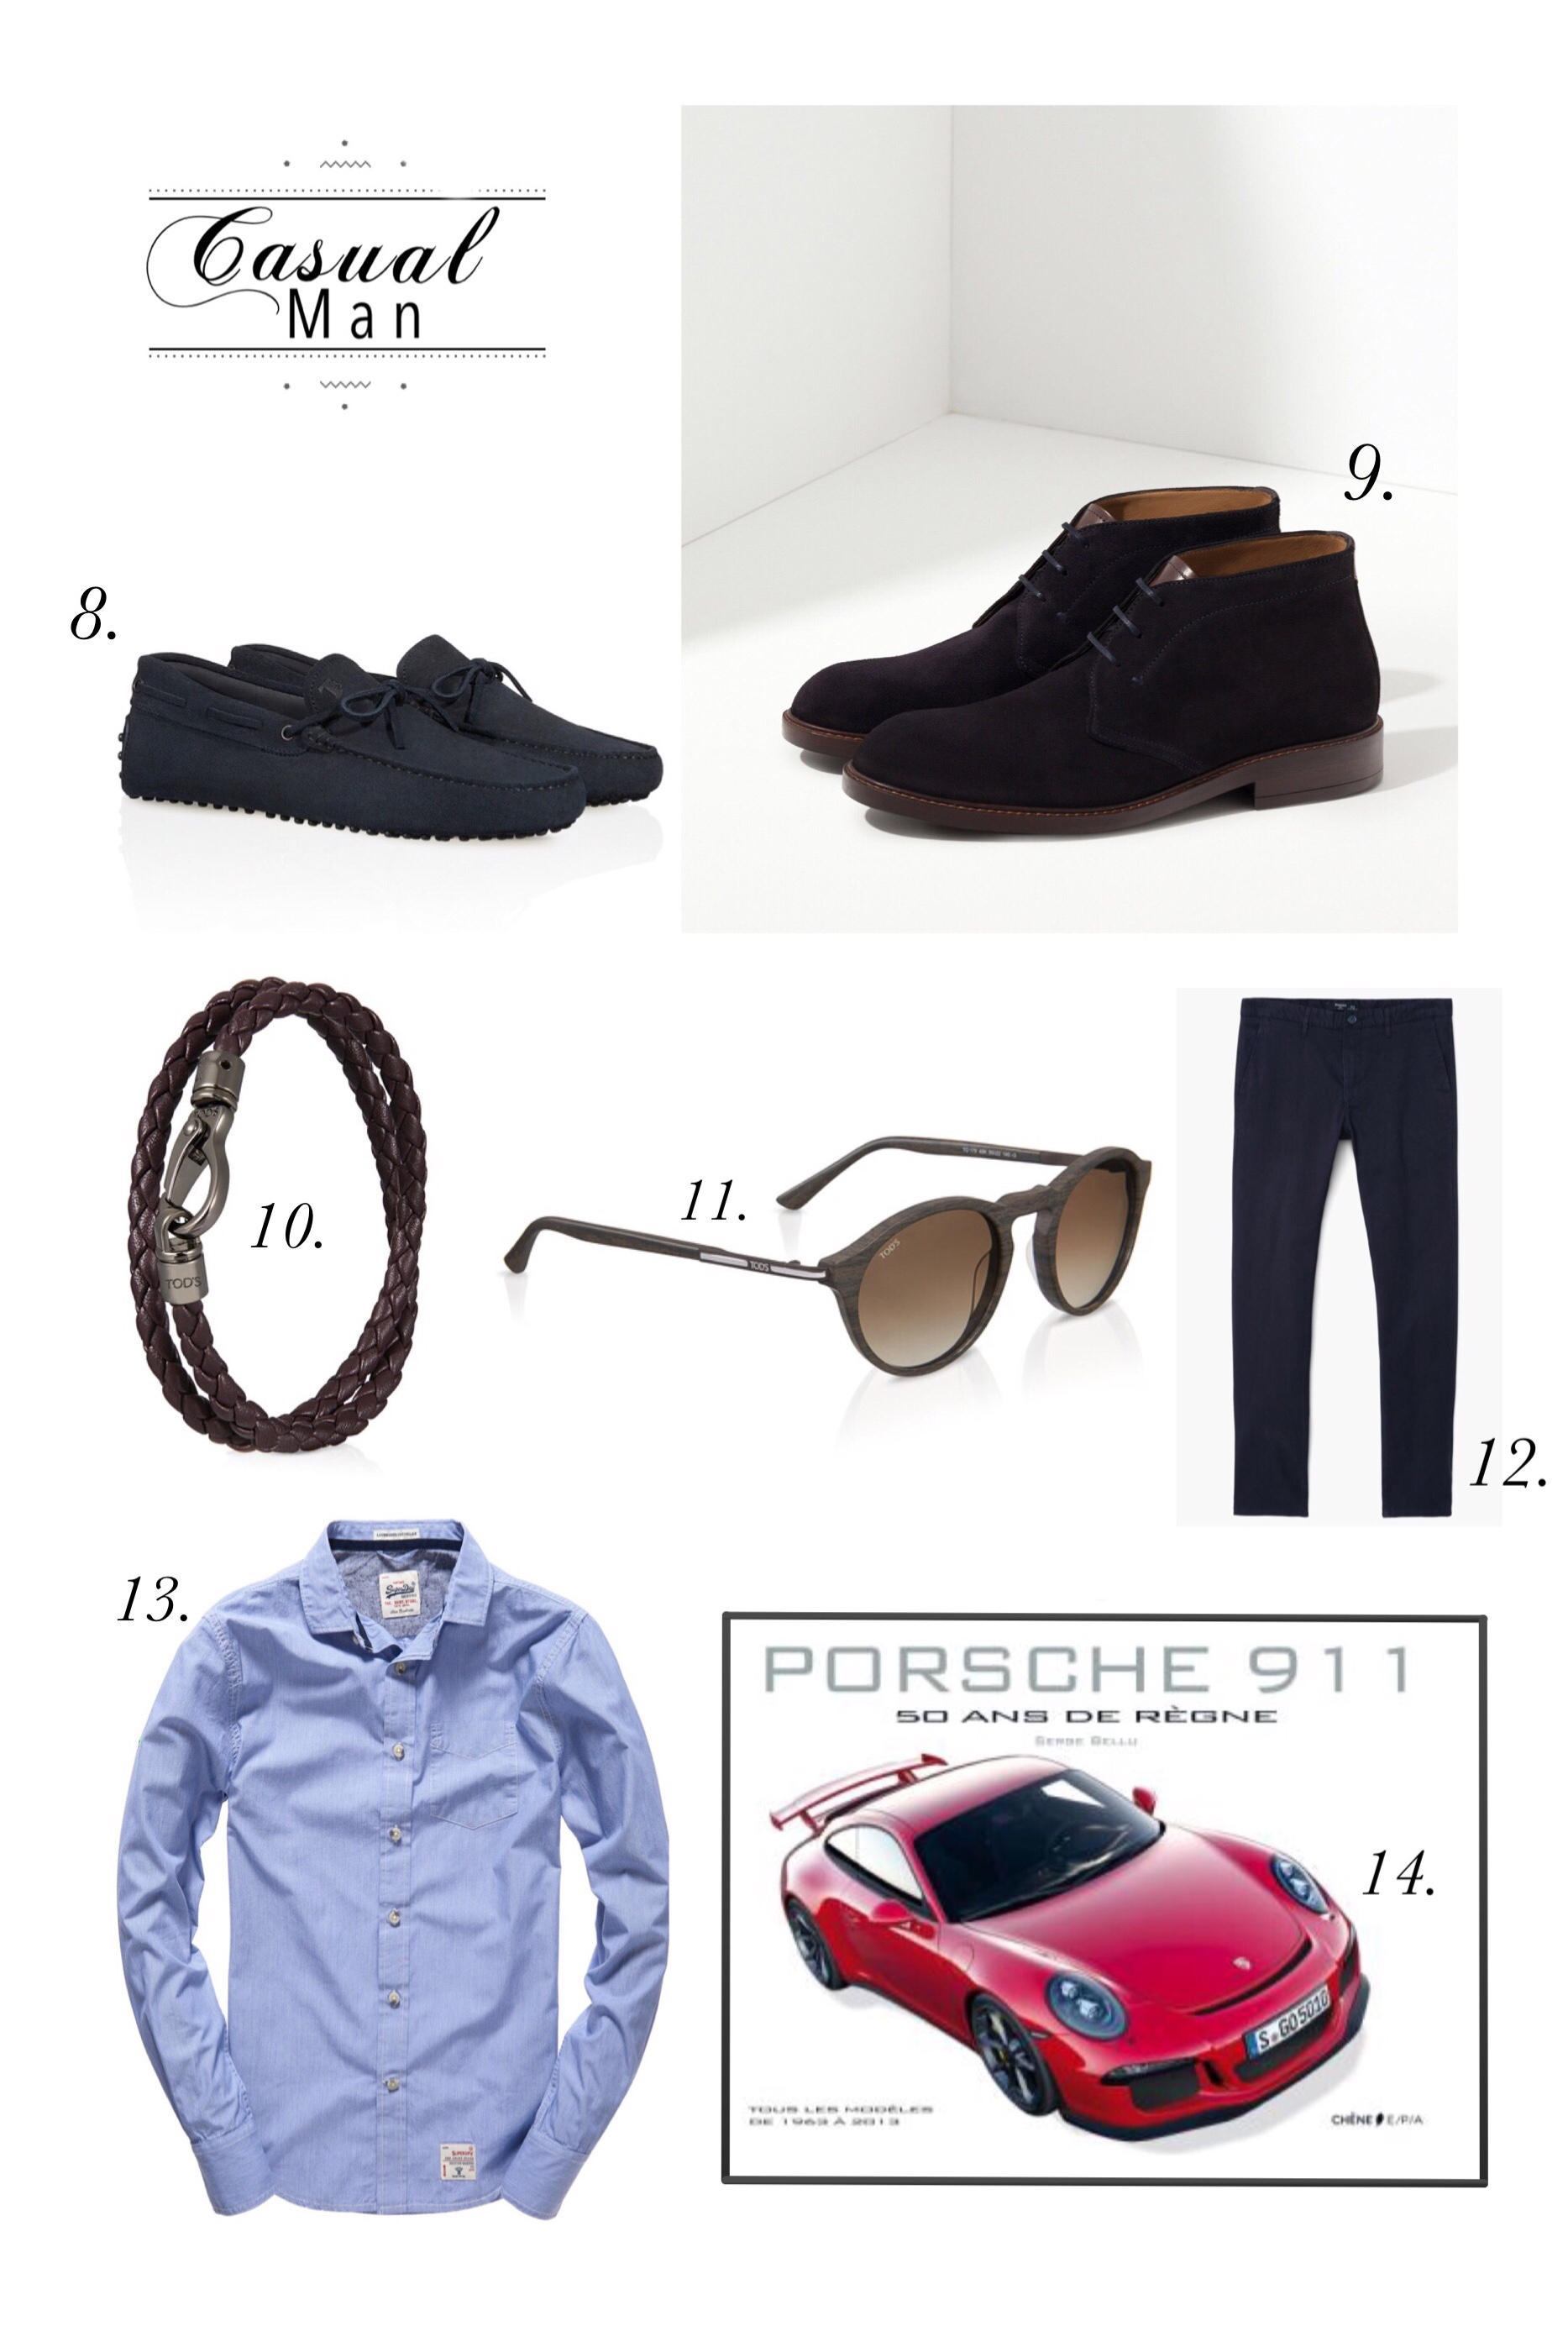 Valentine's day gift guide for a casual man